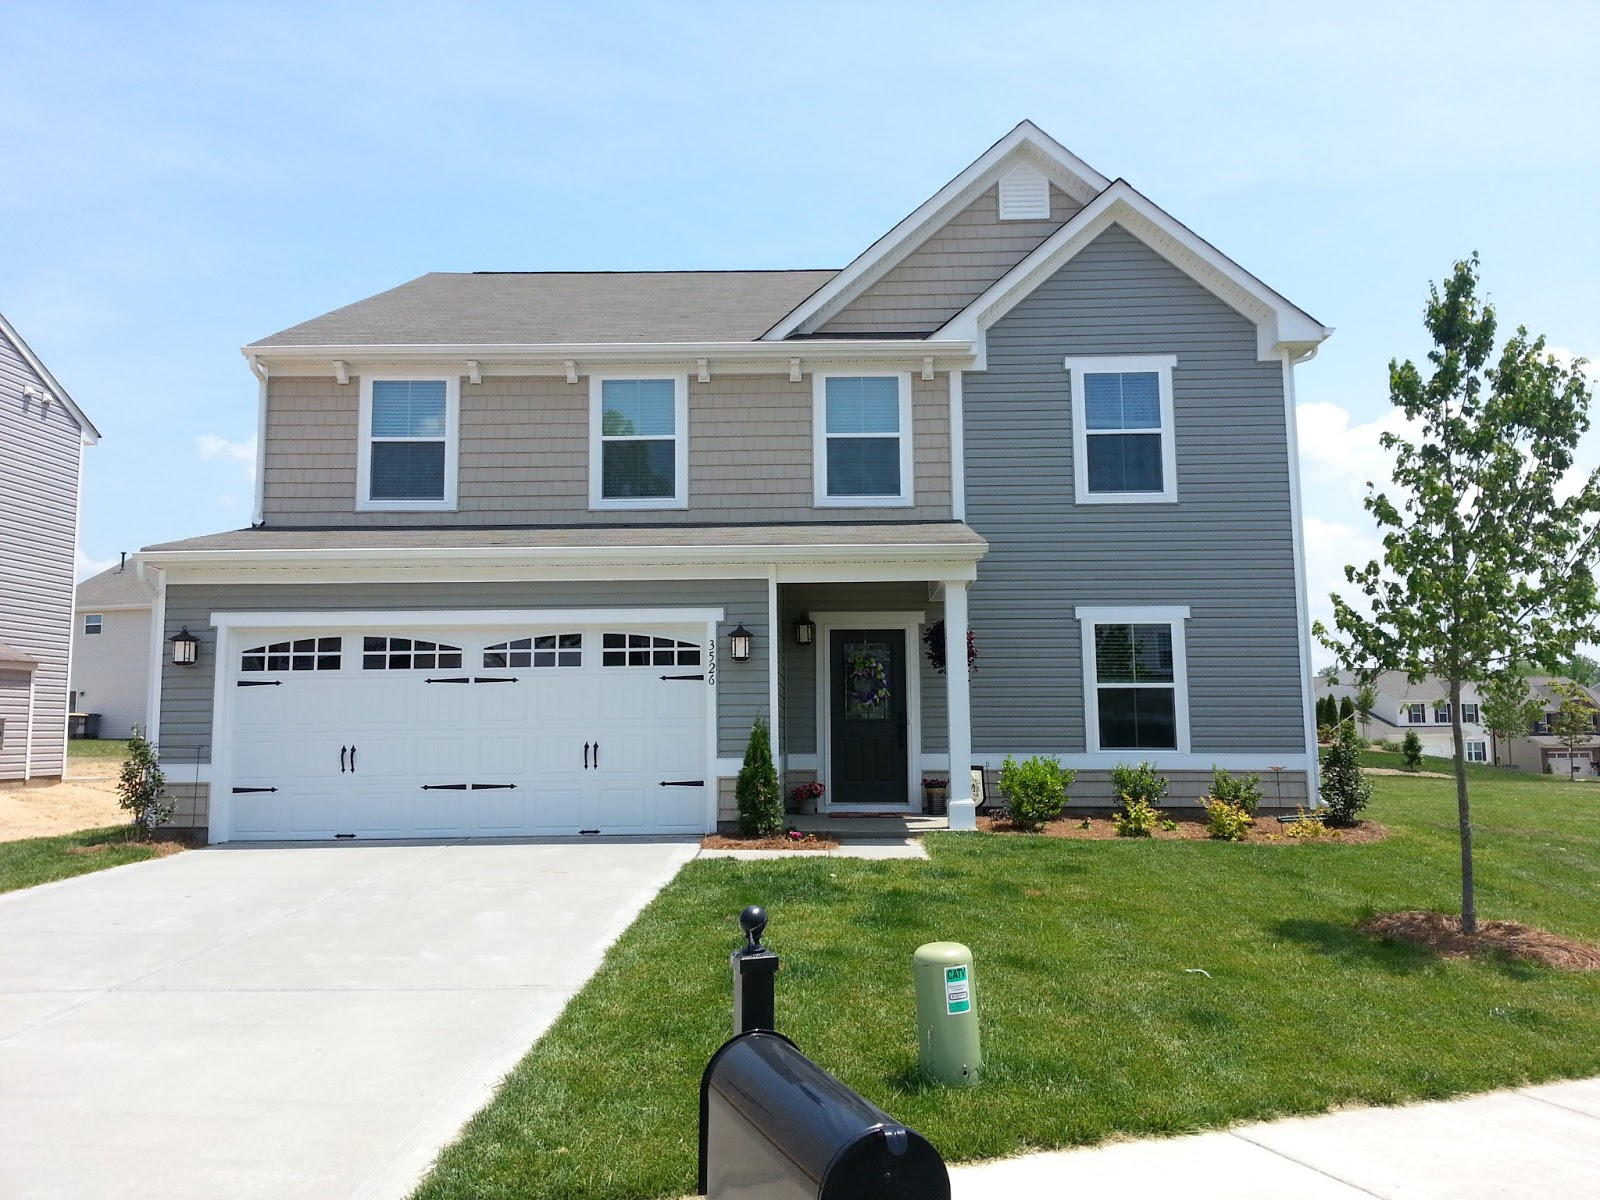 Our Choice Was Florence By Ryan Homes